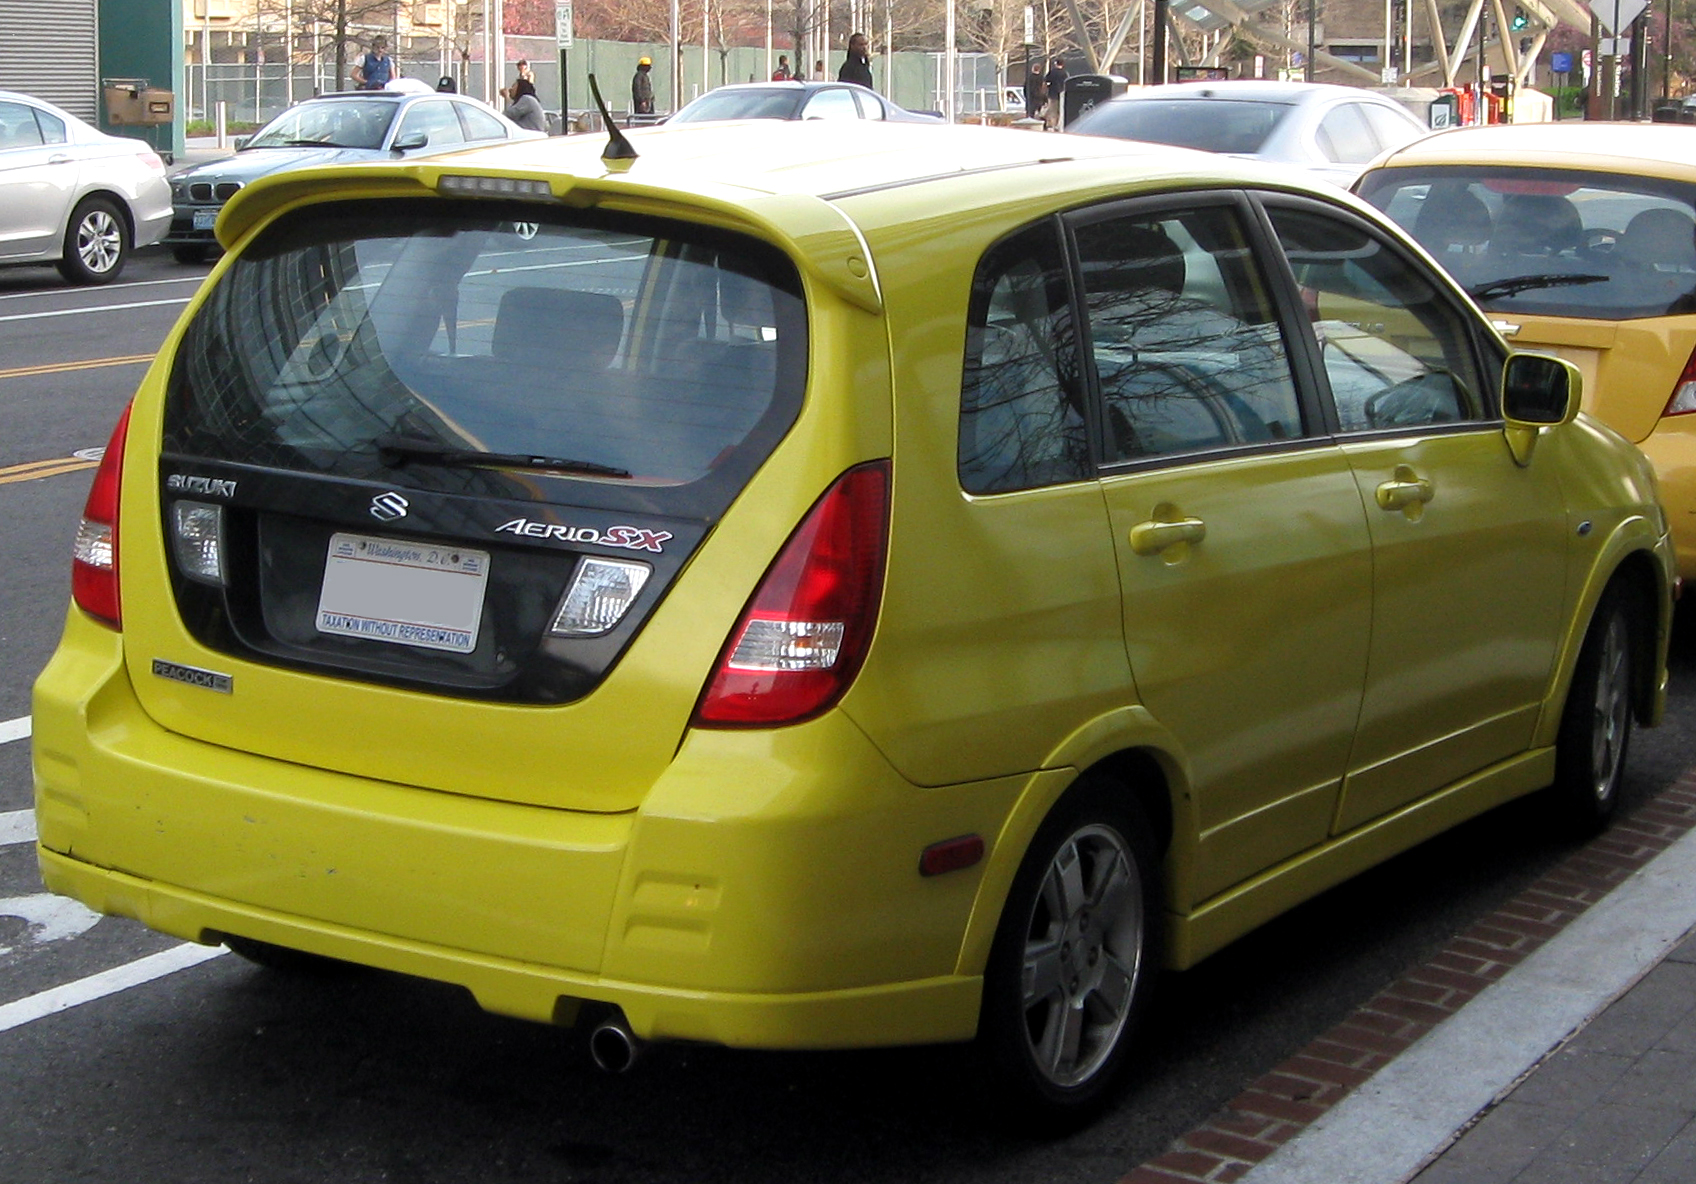 file suzuki aerio sx 04 10 2011 rear jpg wikimedia commons https commons wikimedia org wiki file suzuki aerio sx 04 10 2011 rear jpg